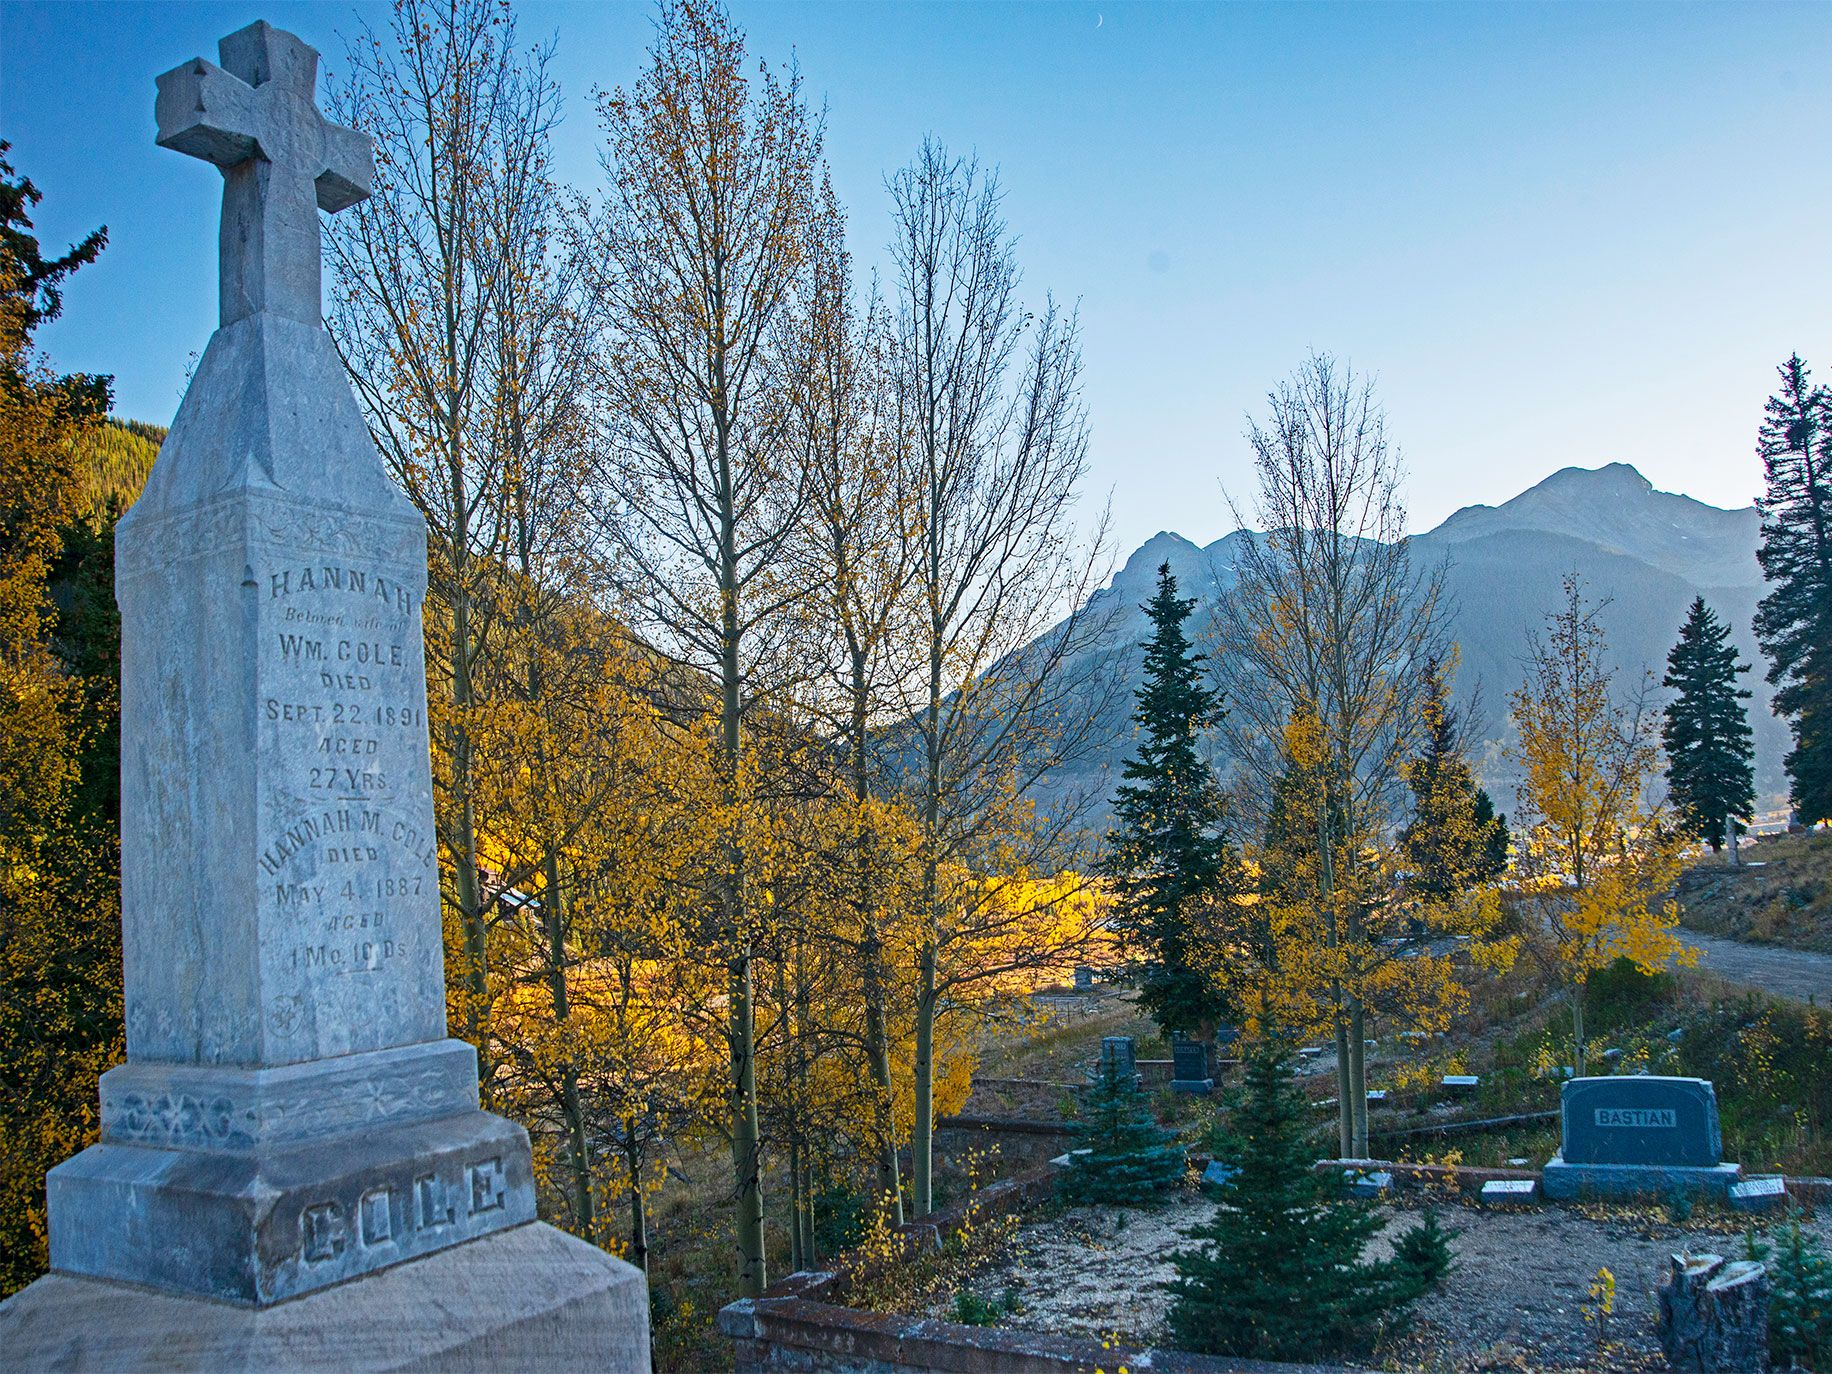 Gravestones at the Hillside Cemetery in Silverton, Colorado, bear witness to mining accidents and illnesses like pneumonia, typhoid fever, diphtheria, and the flu epidemic of 1918 that killed many of its citizens.